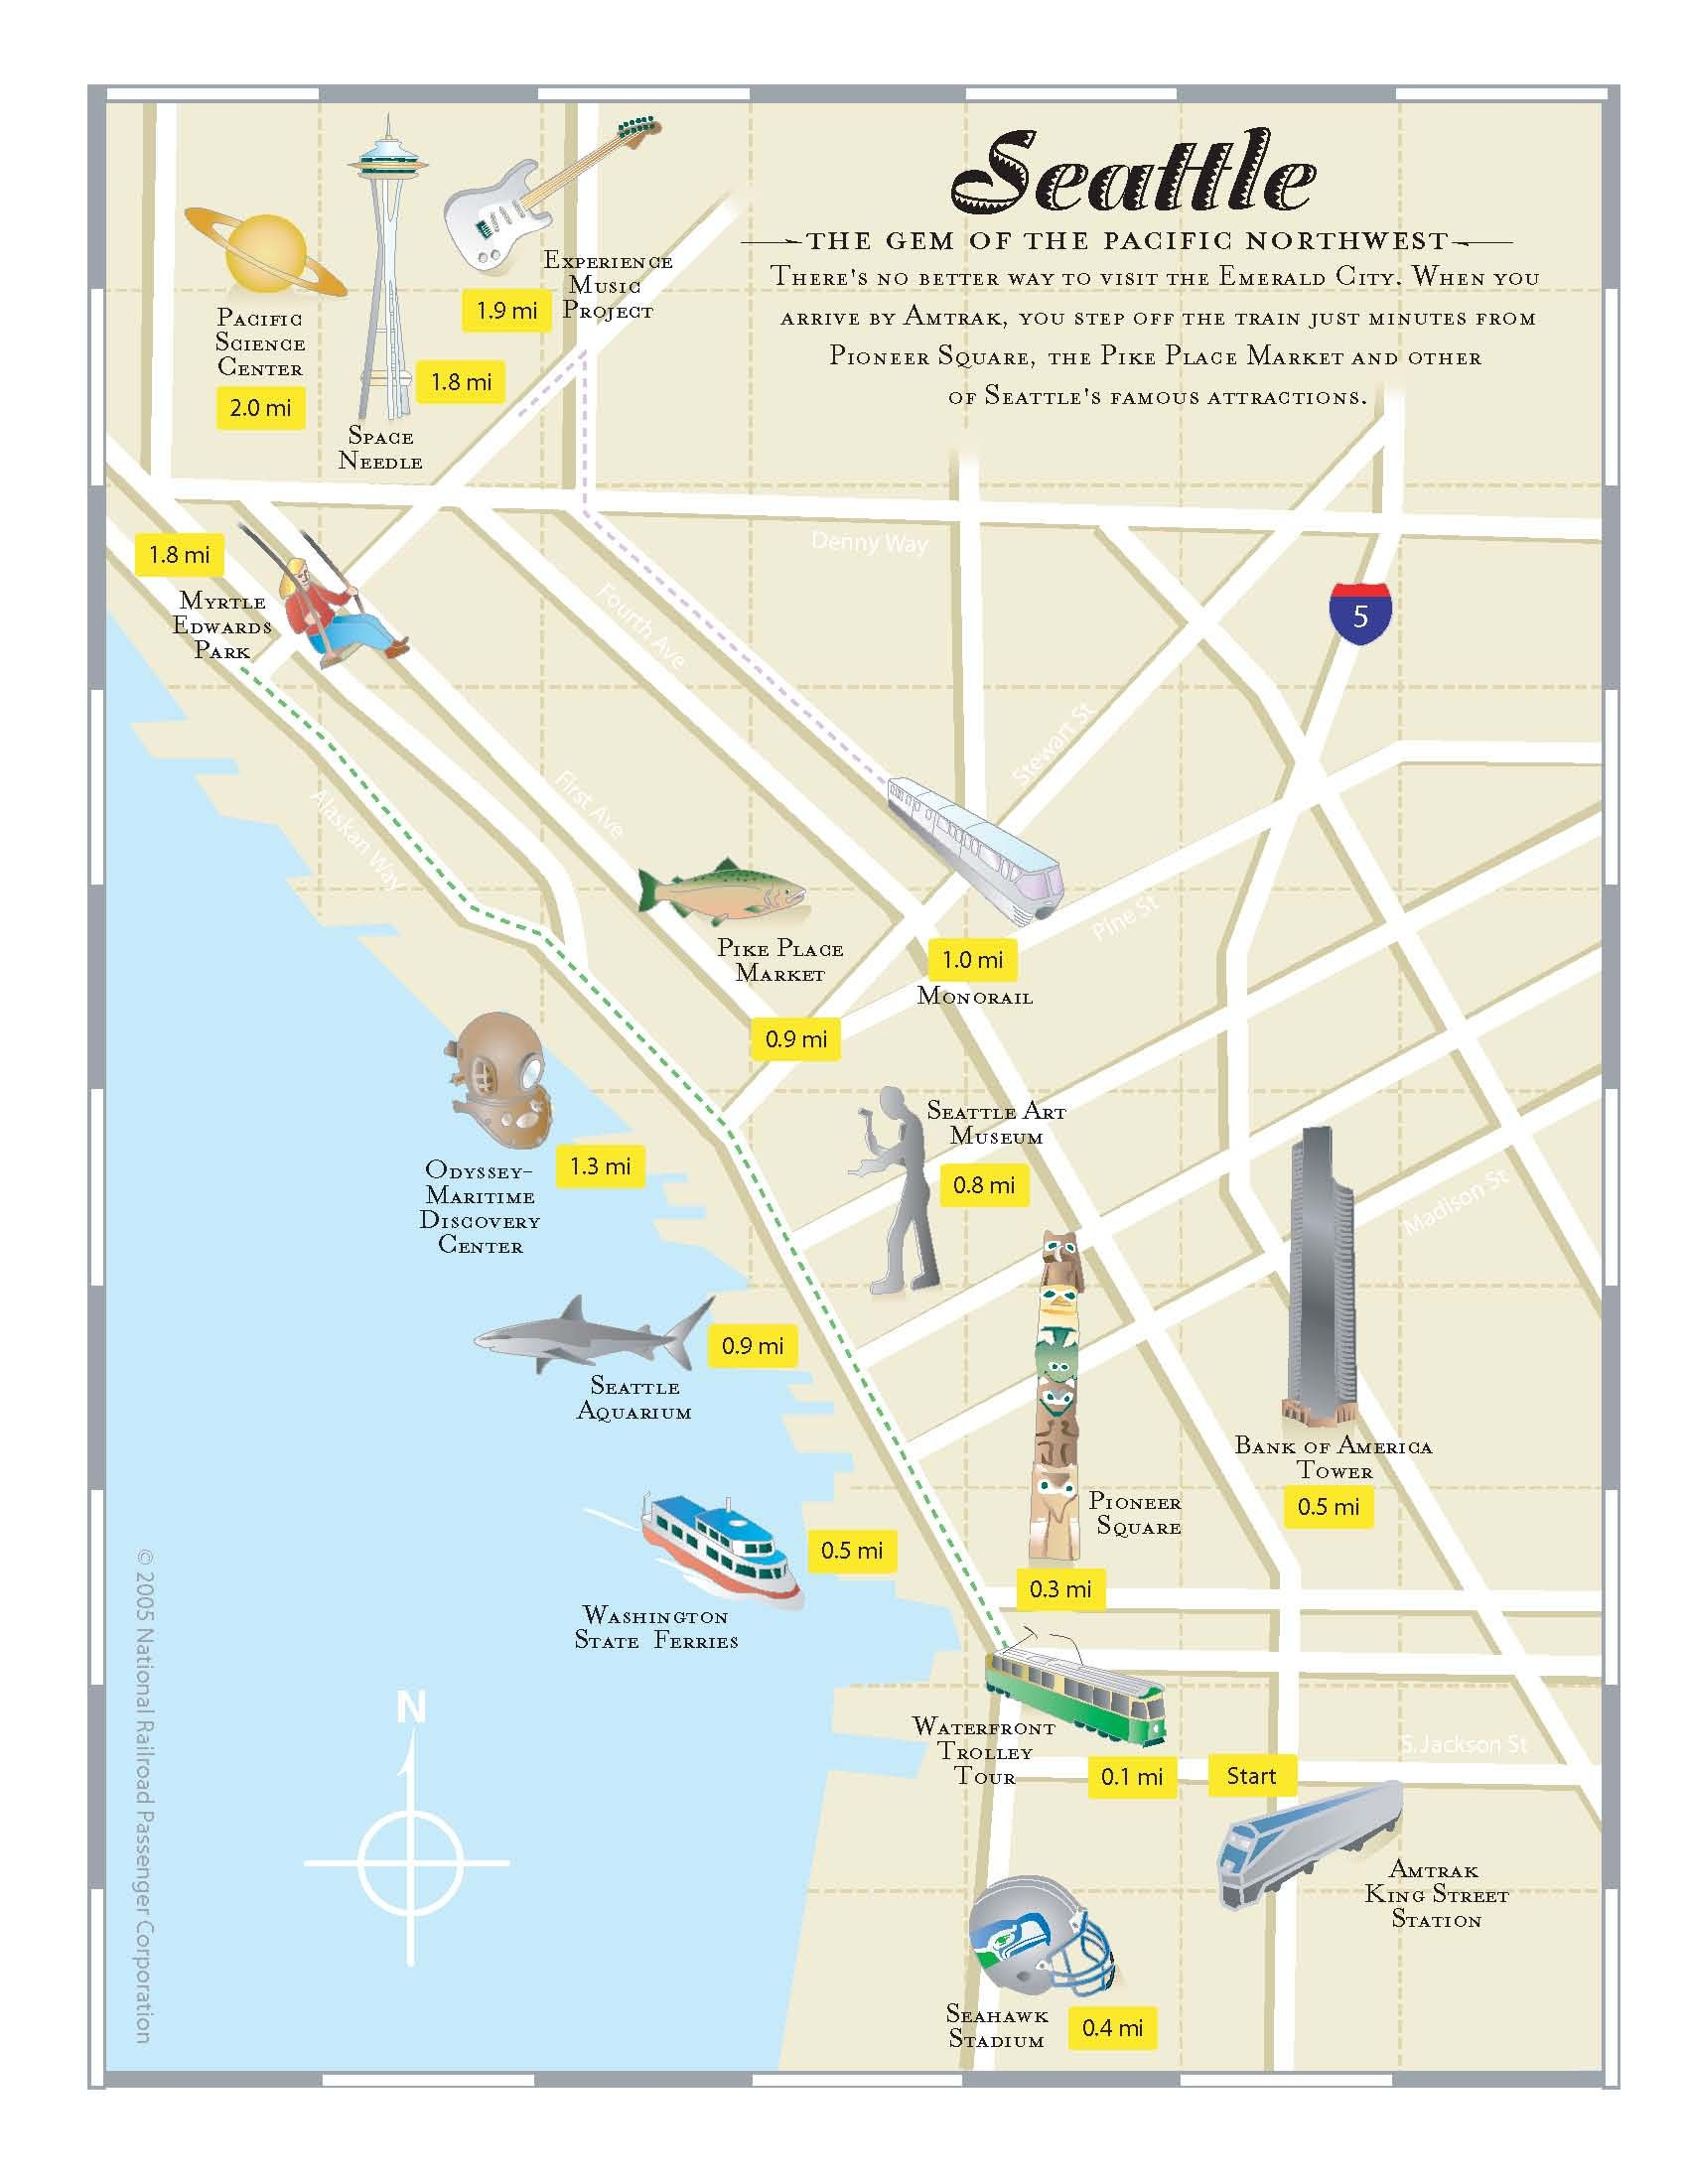 Seattle Neighborhood Guide In Relation To Amtrak Stations - Amtrak national map